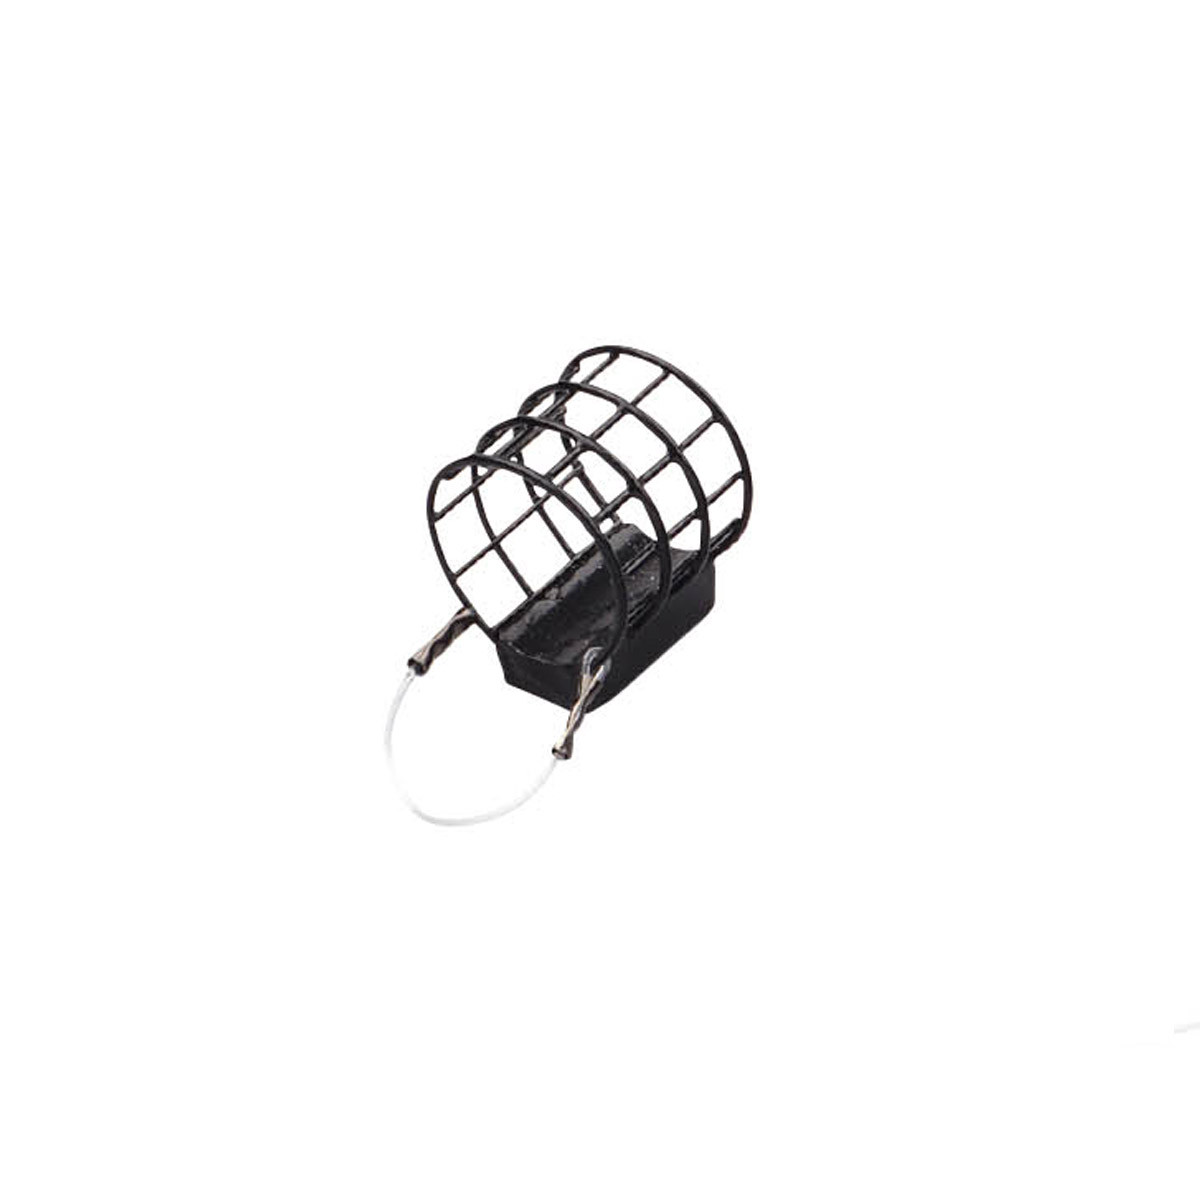 Spro Cresta Cage Feeder Extra Small